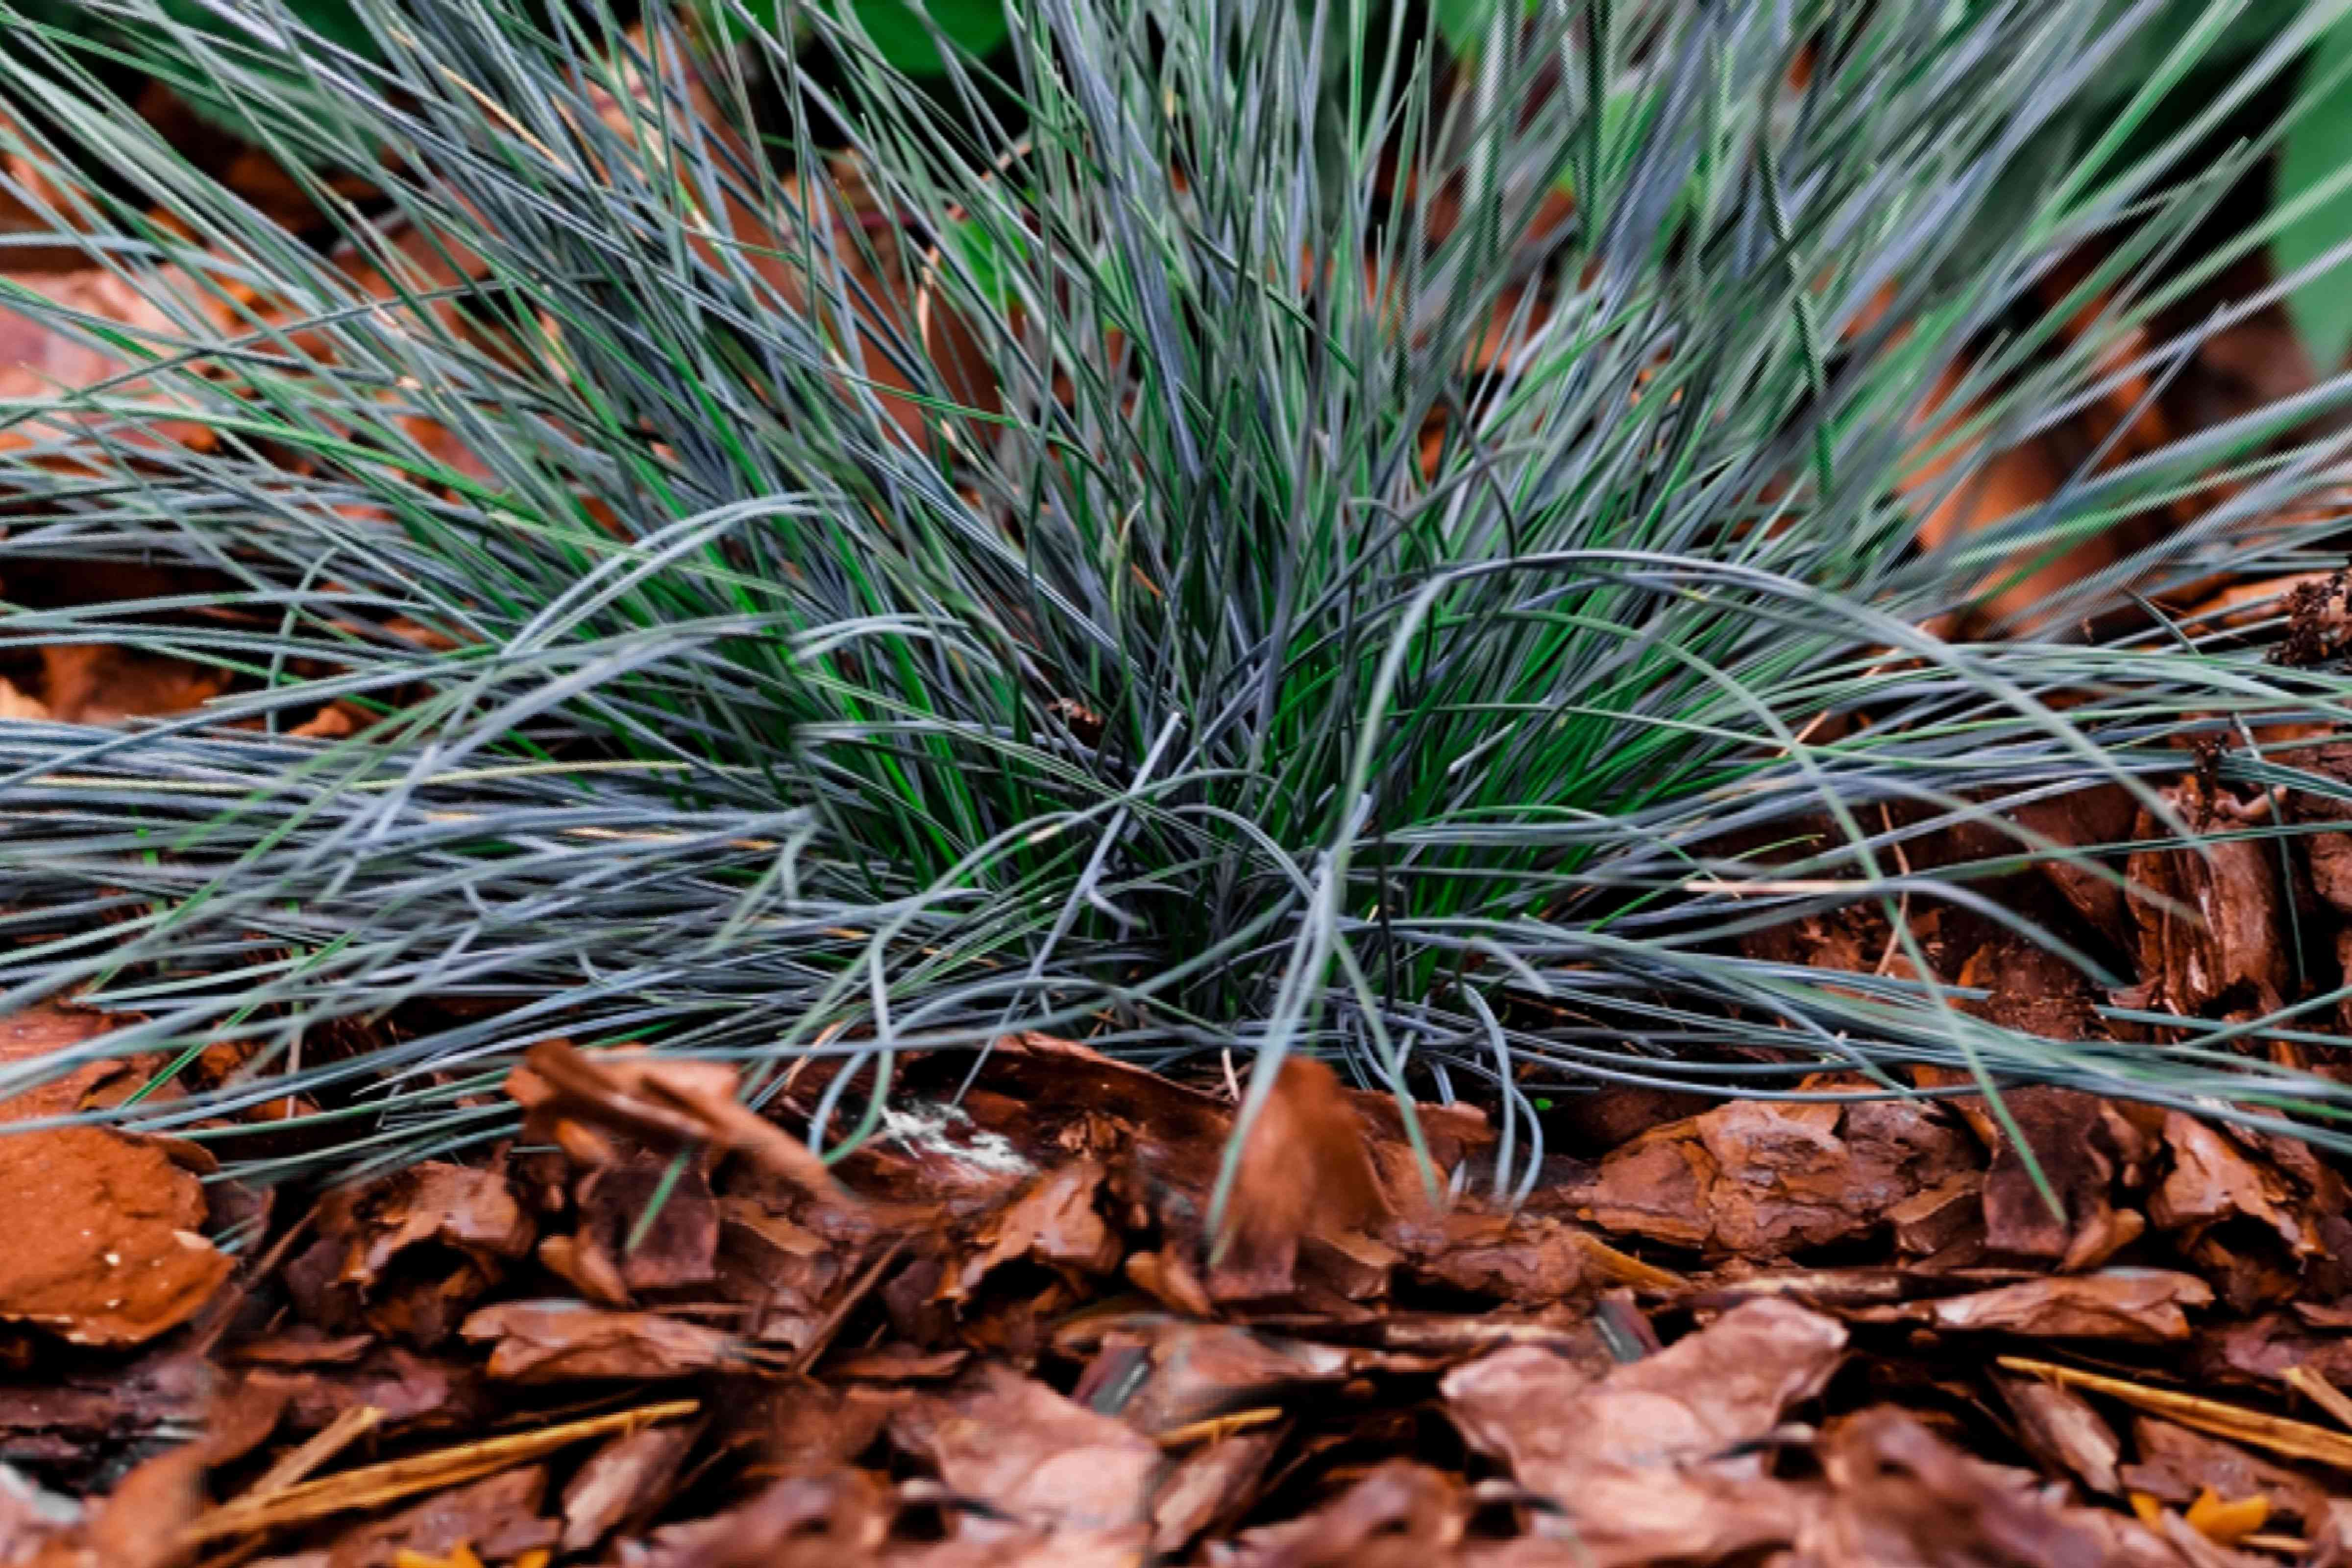 Blue fescue grass with blue-green leaf blades surrounded with brown leaves closeup